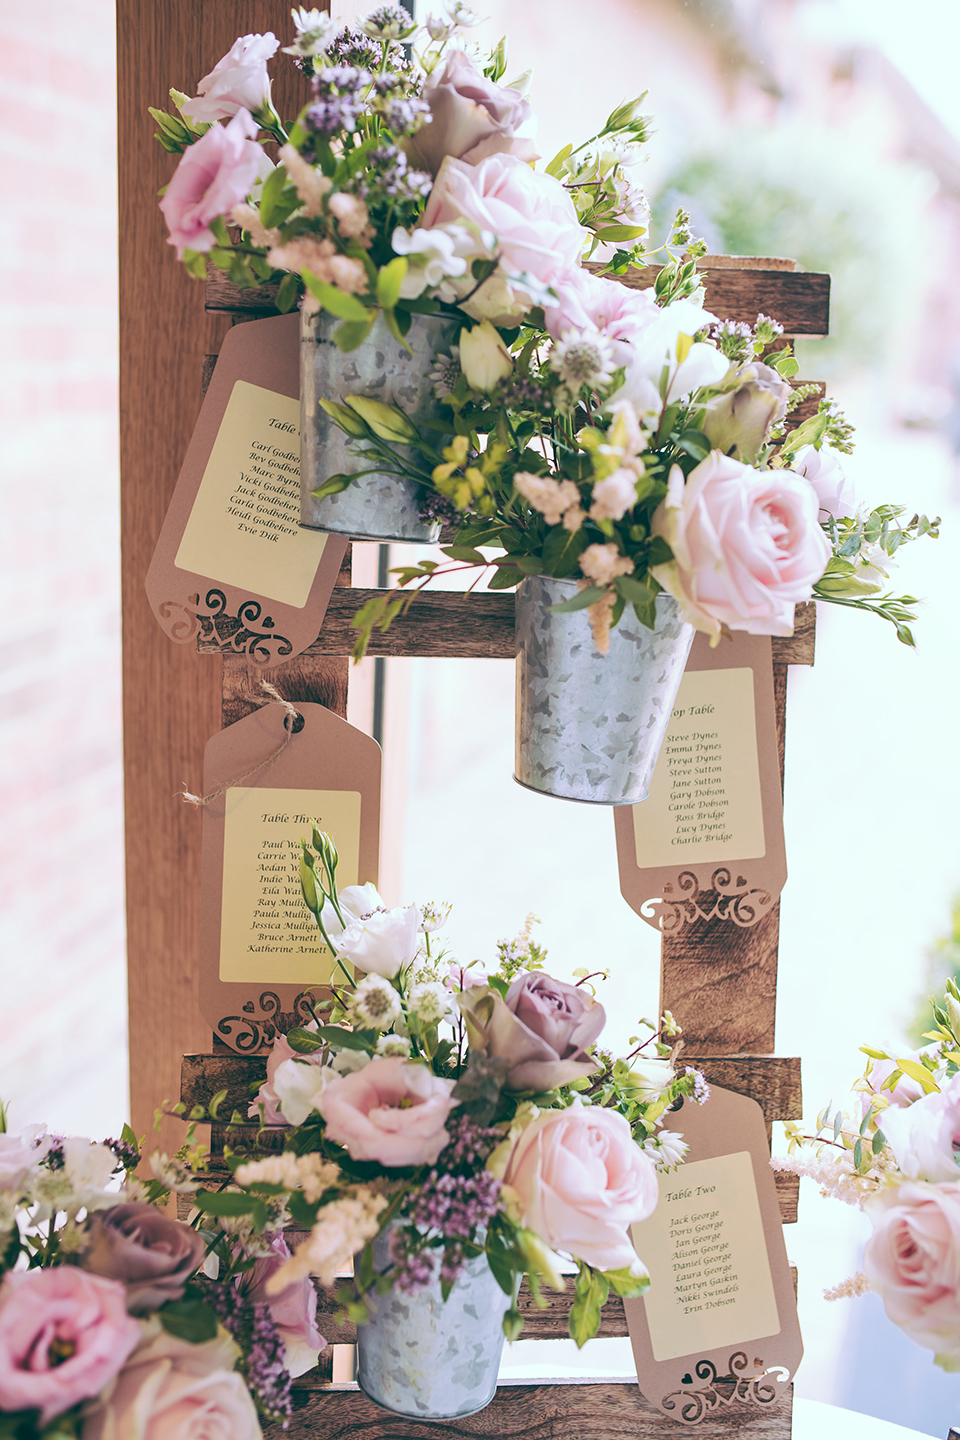 A couple adorned their wedding table plan at Bassmead Manor Barns with pink wedding flowers